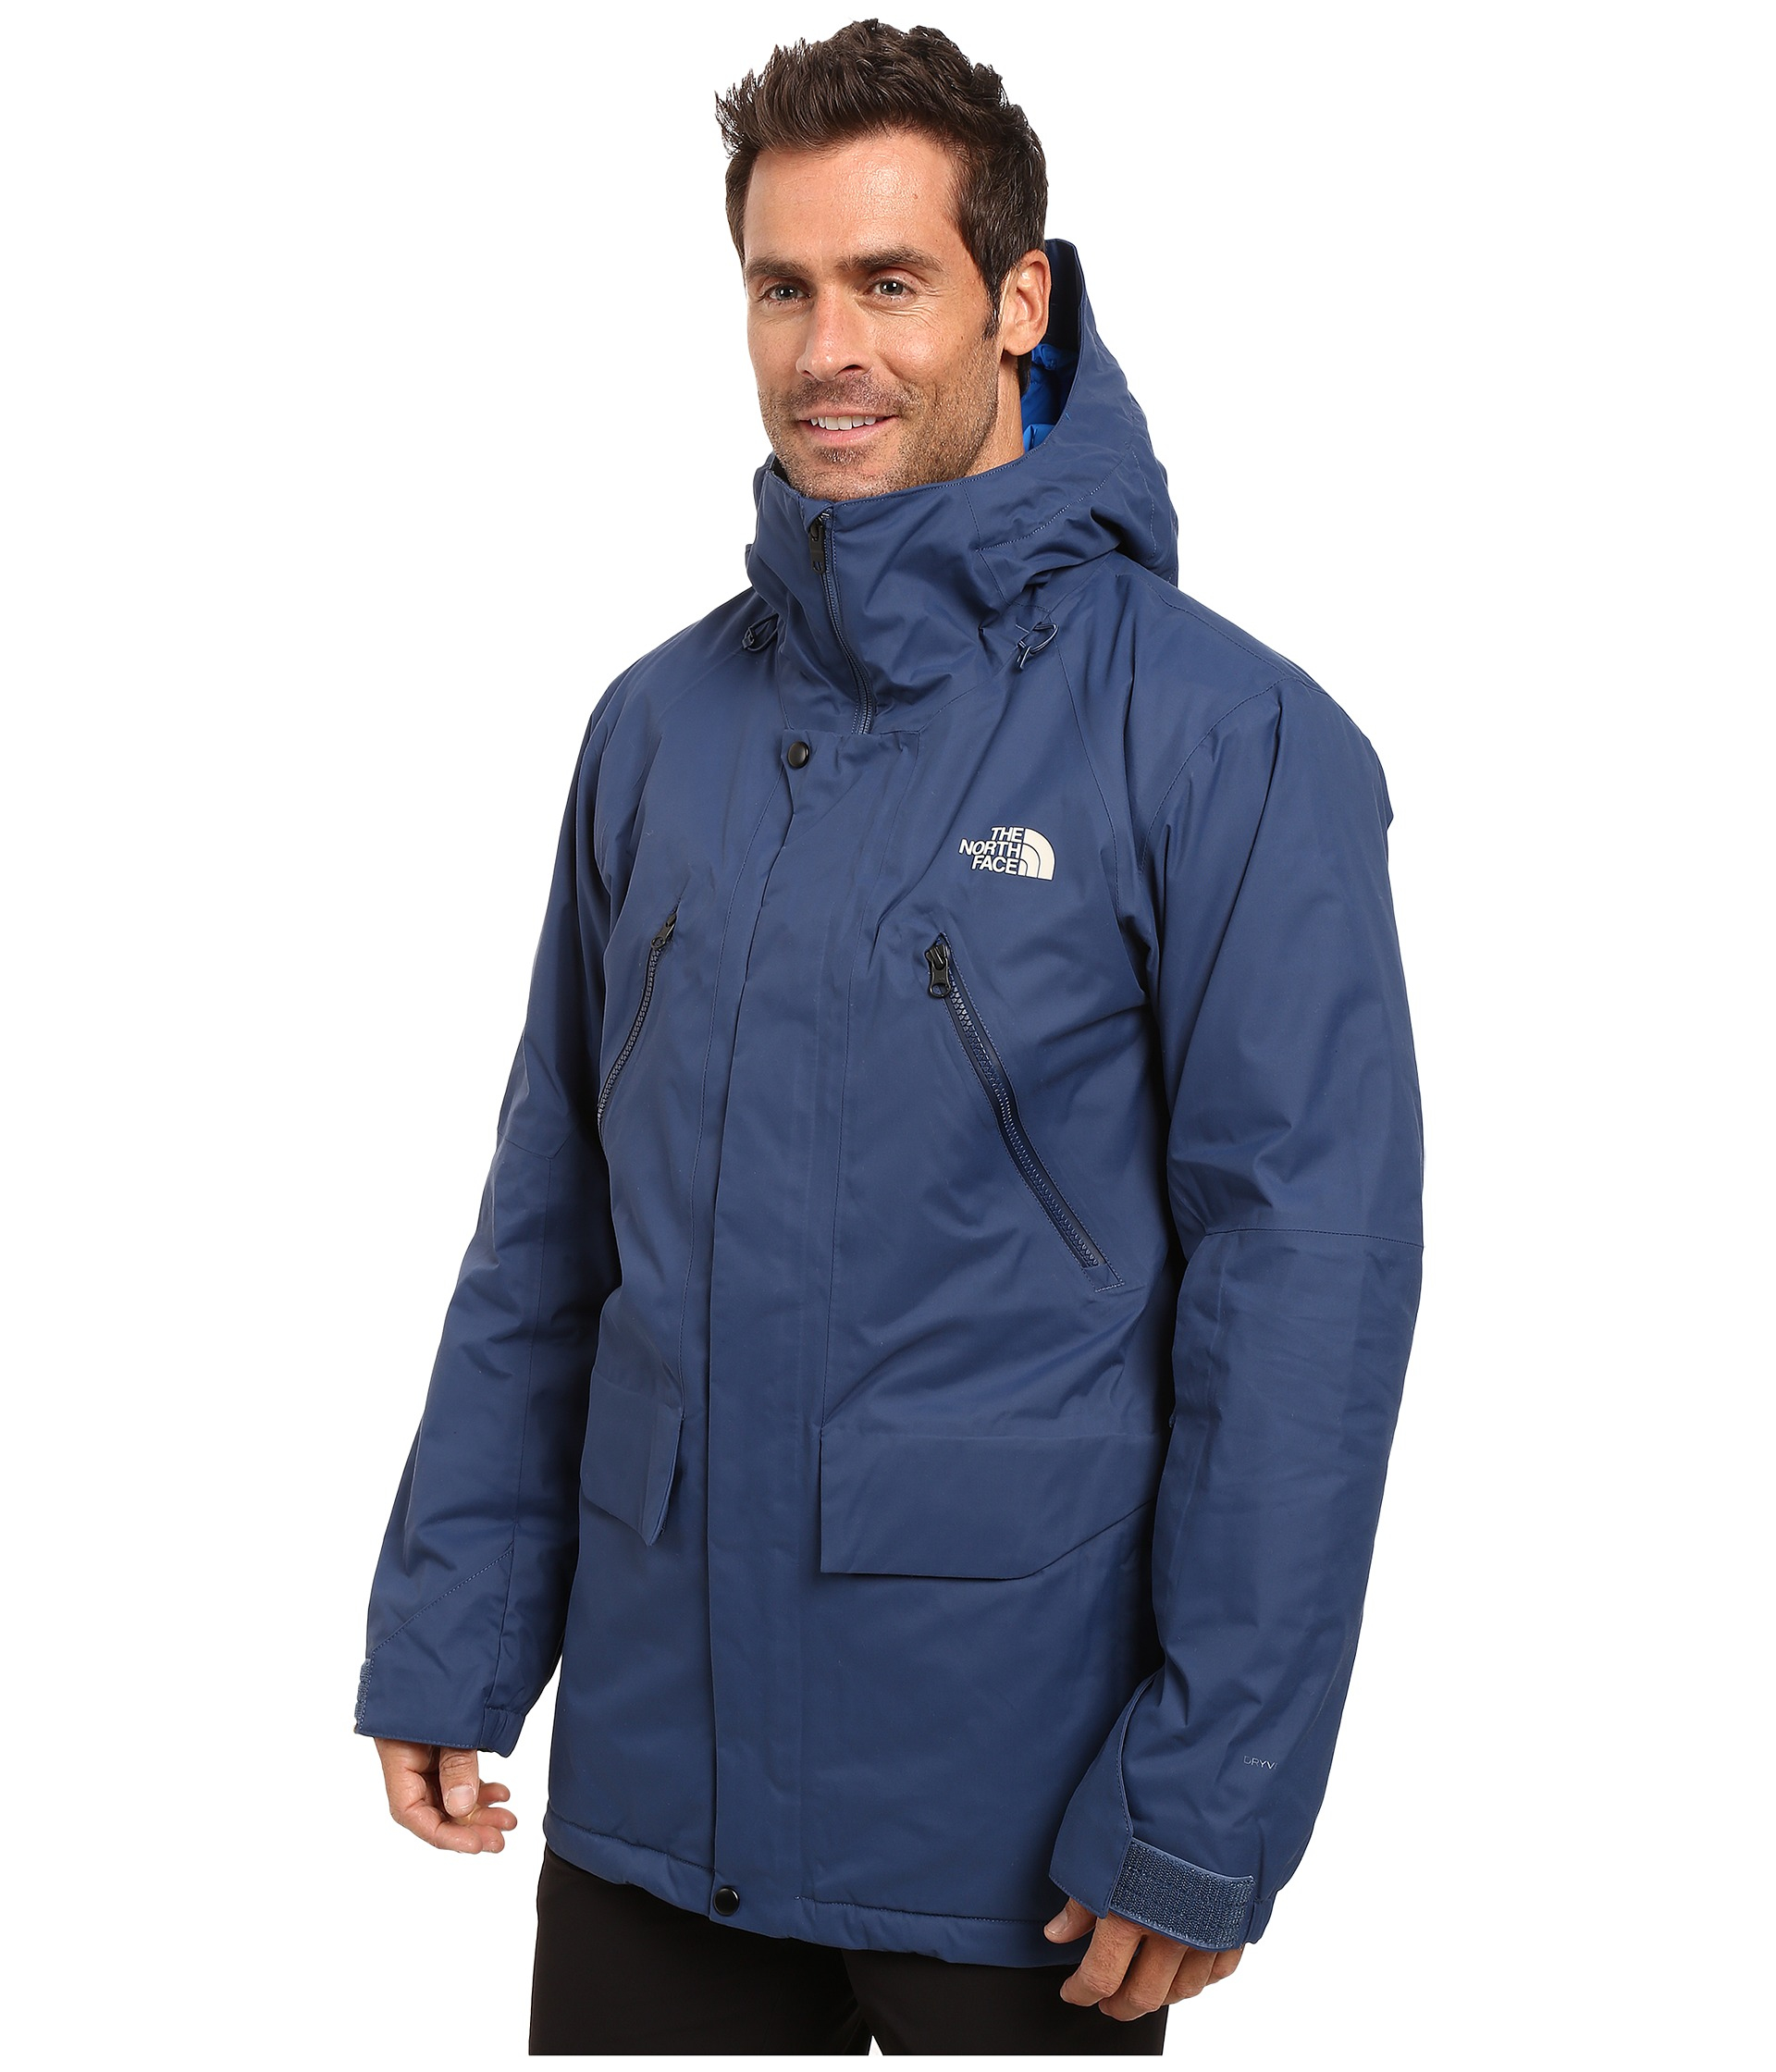 The North Face Synthetic Sherman Insulated Jacket In Blue